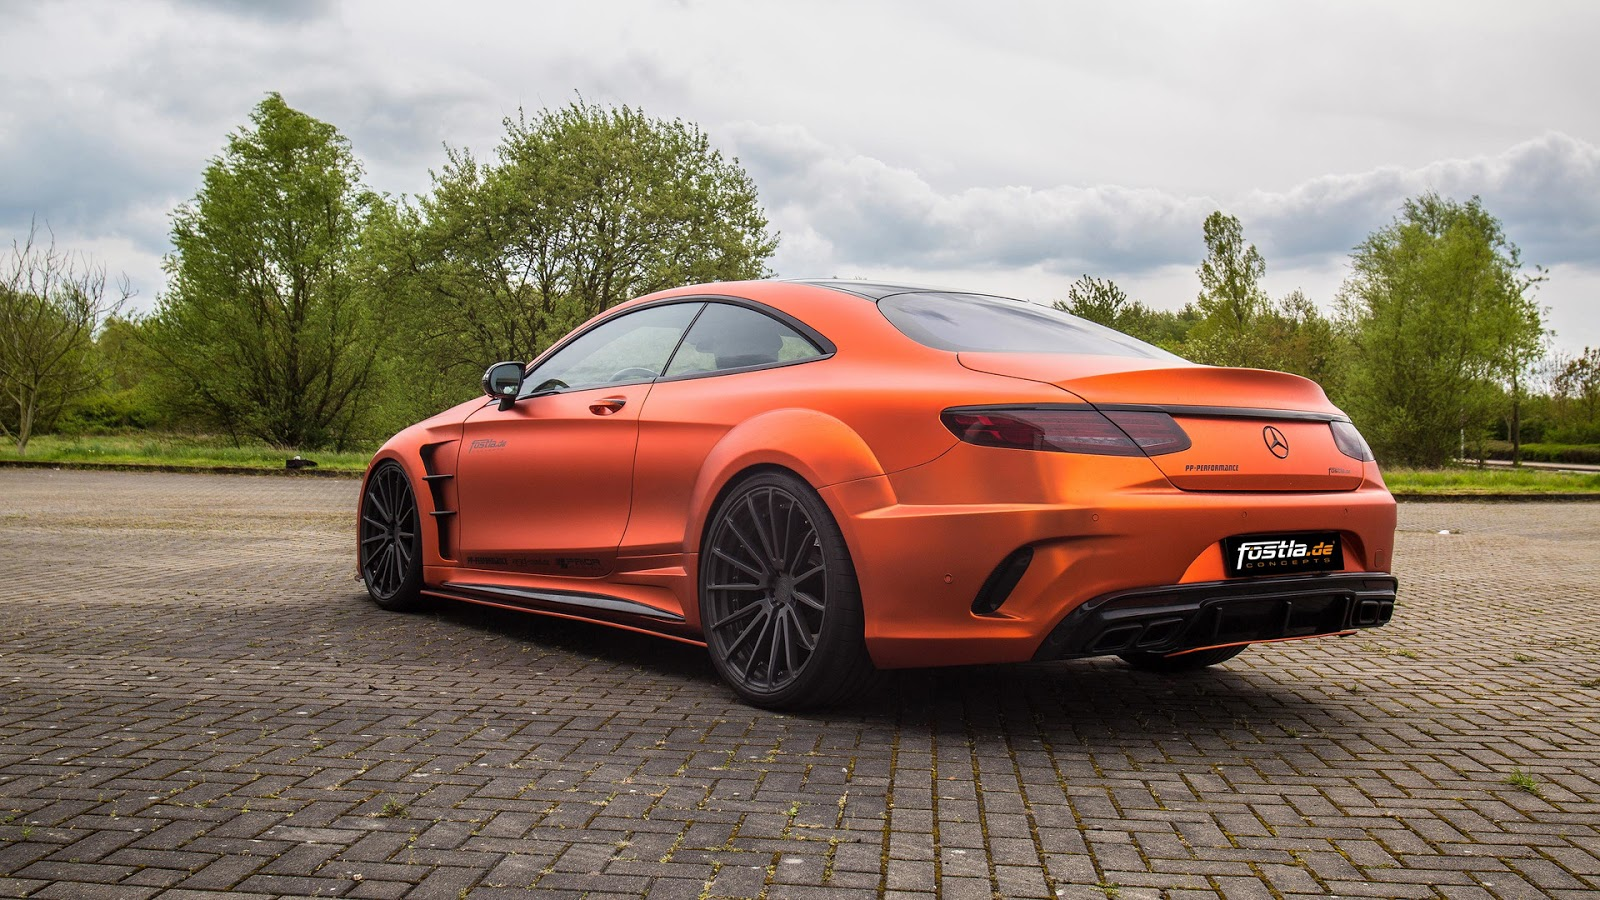 Fostla goes all out with prior design mercedes amg s63 for Mercedes benz s63 amg biturbo